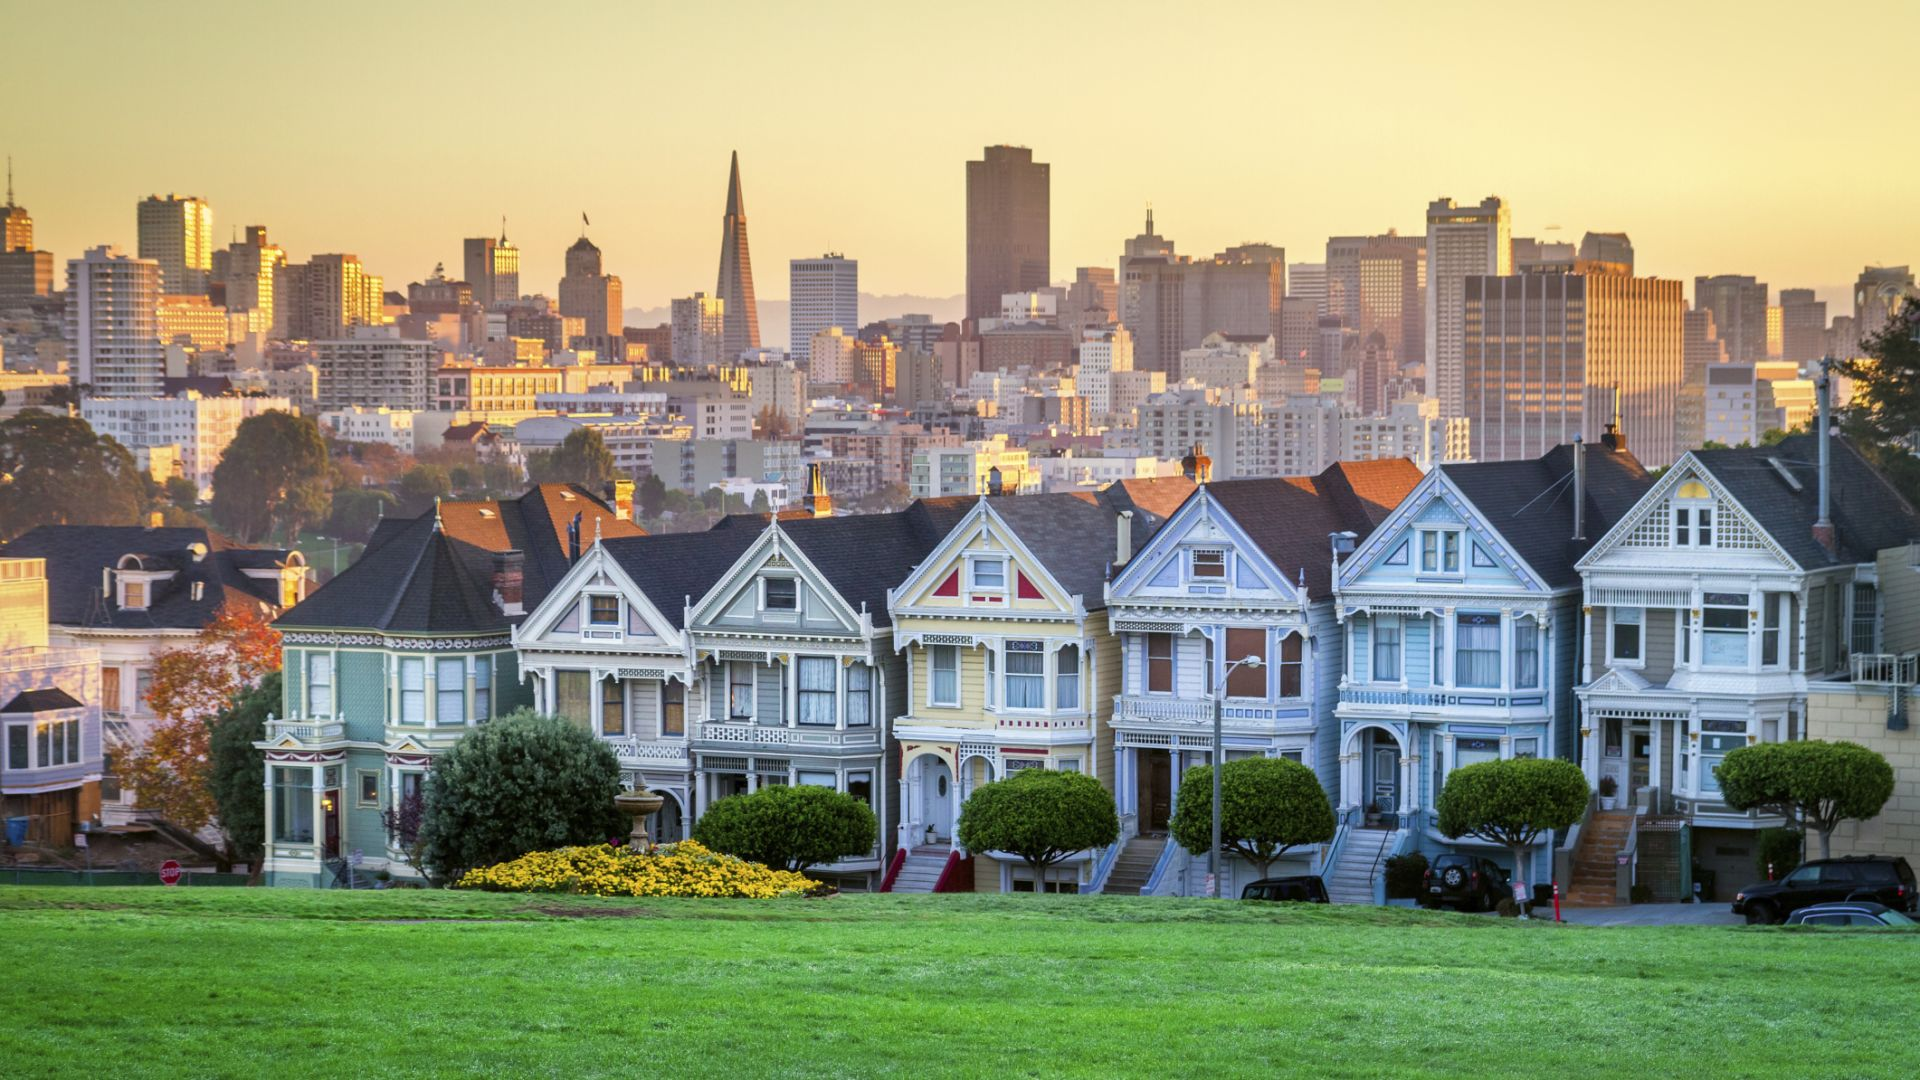 Painted Ladies houses in San Francisco